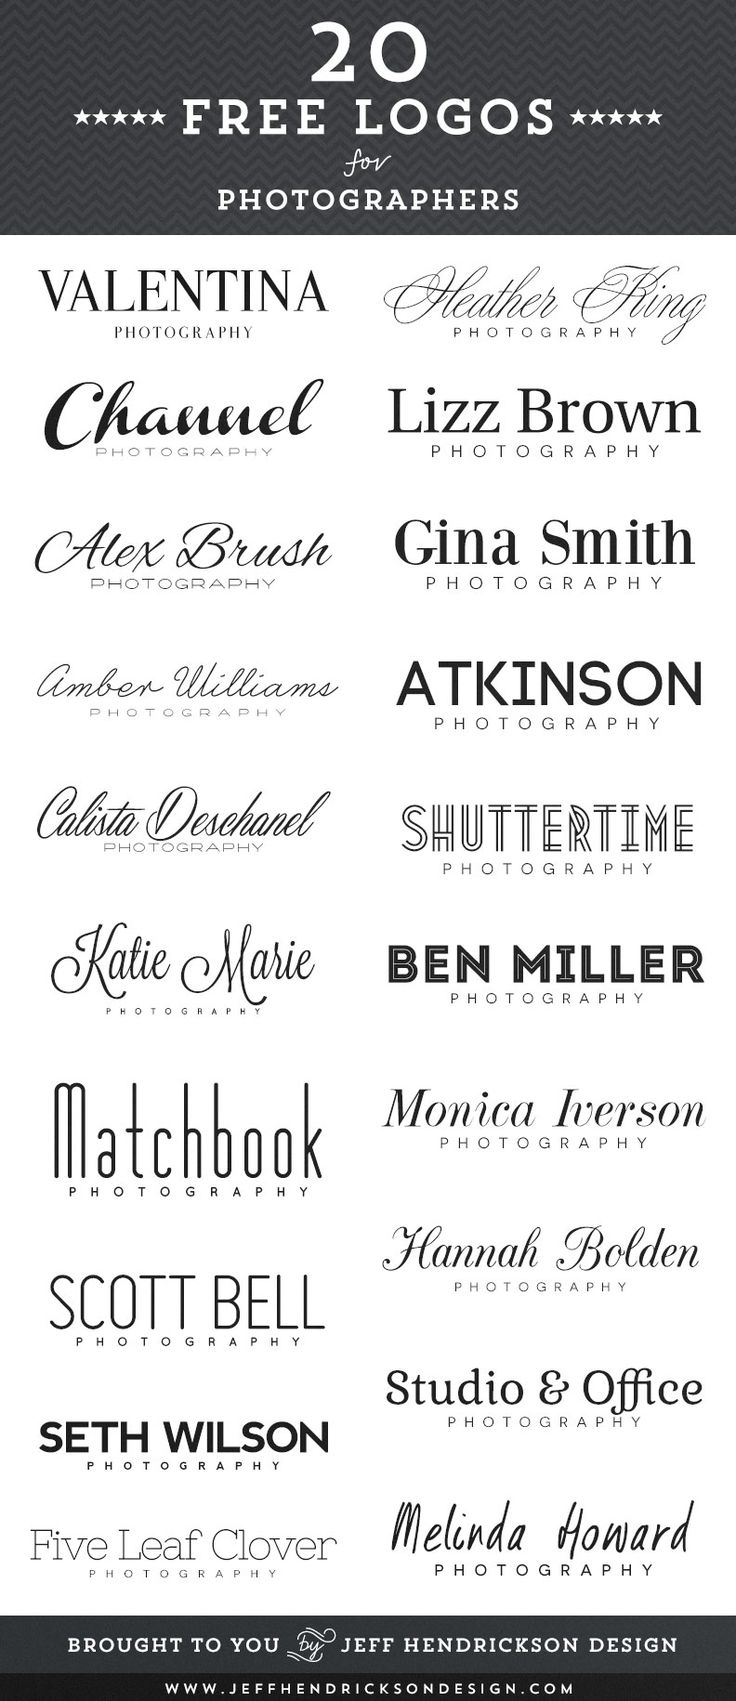 best ideas about logo design logo who doesn t appreciate stuff i know i do when it